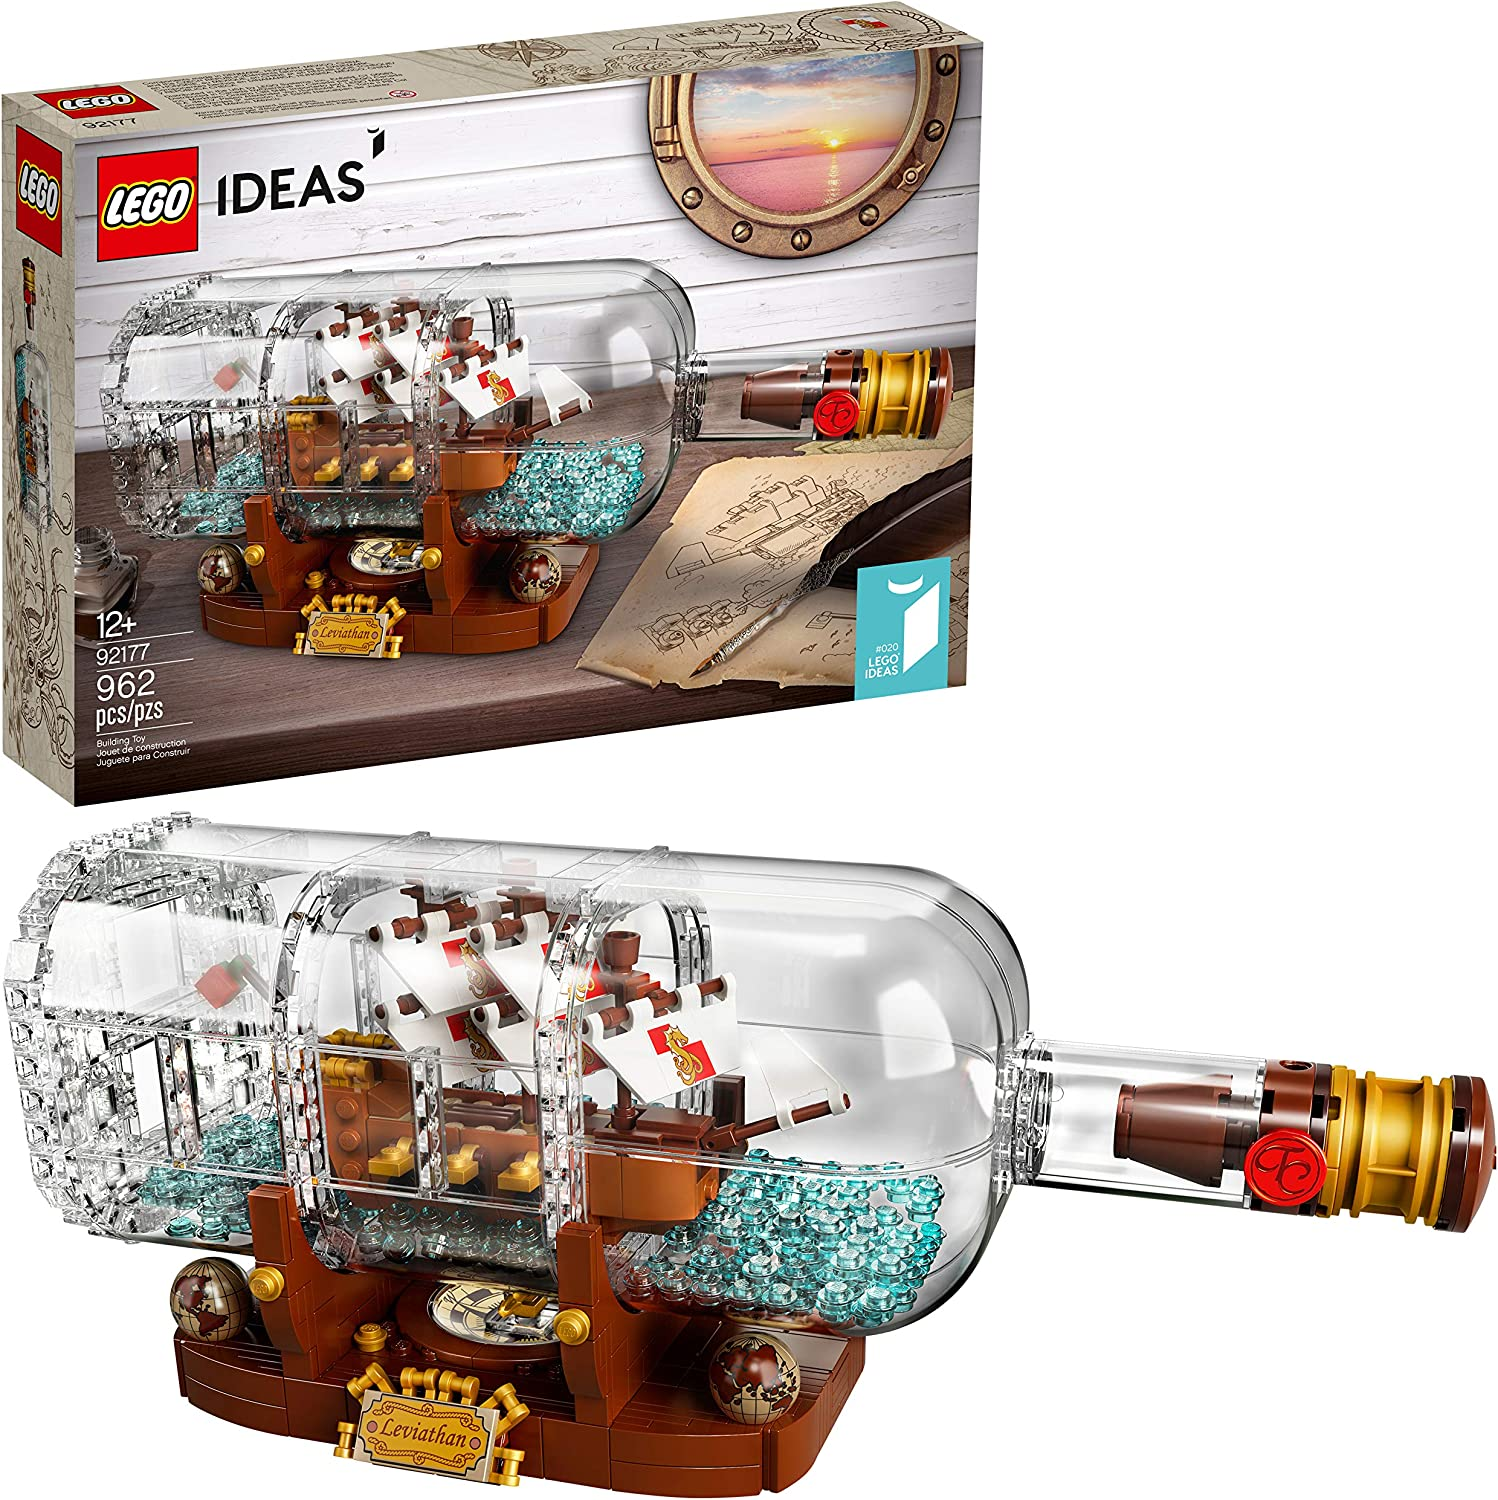 LEGO Ideas Ship in a Bottle 92177 Expert Building Kit, Snap Together Model Ship, Collectible Display Set and Toy for Adults (962 Pieces): Toys & Games